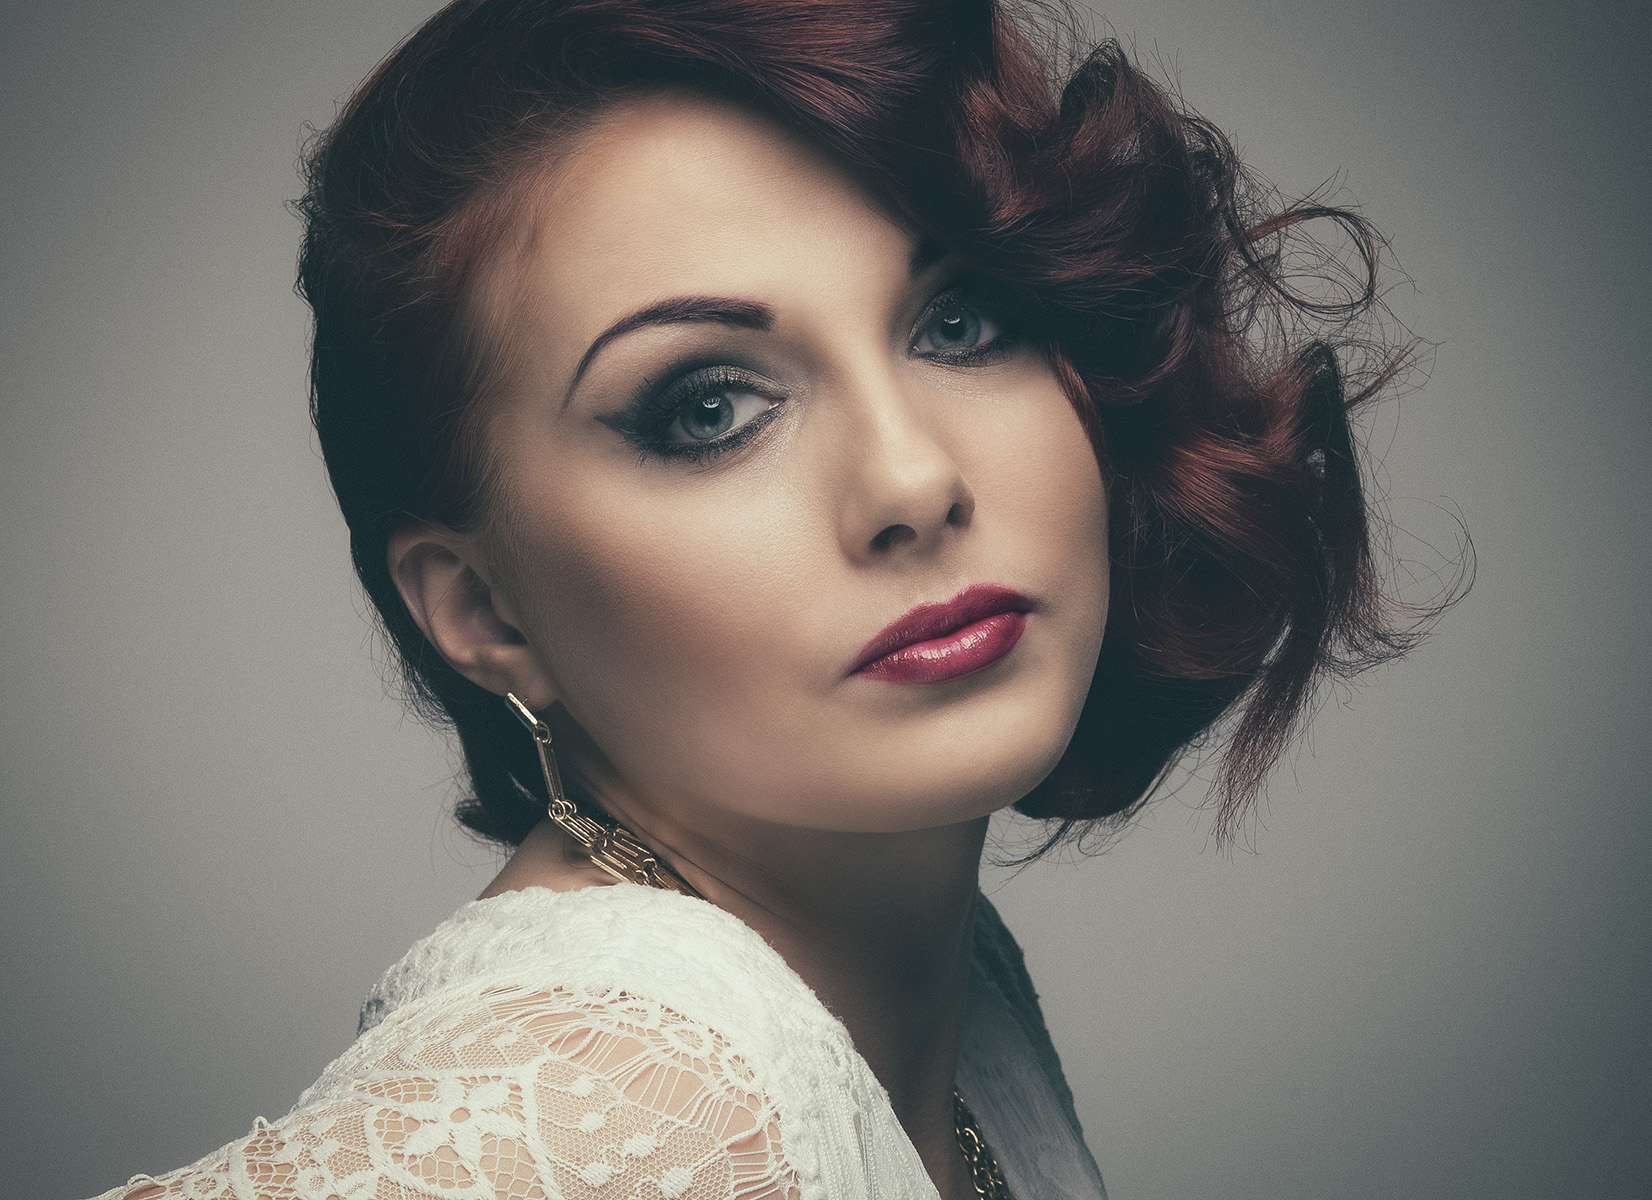 Hair, makeup and styling - Rosie Finnigan.